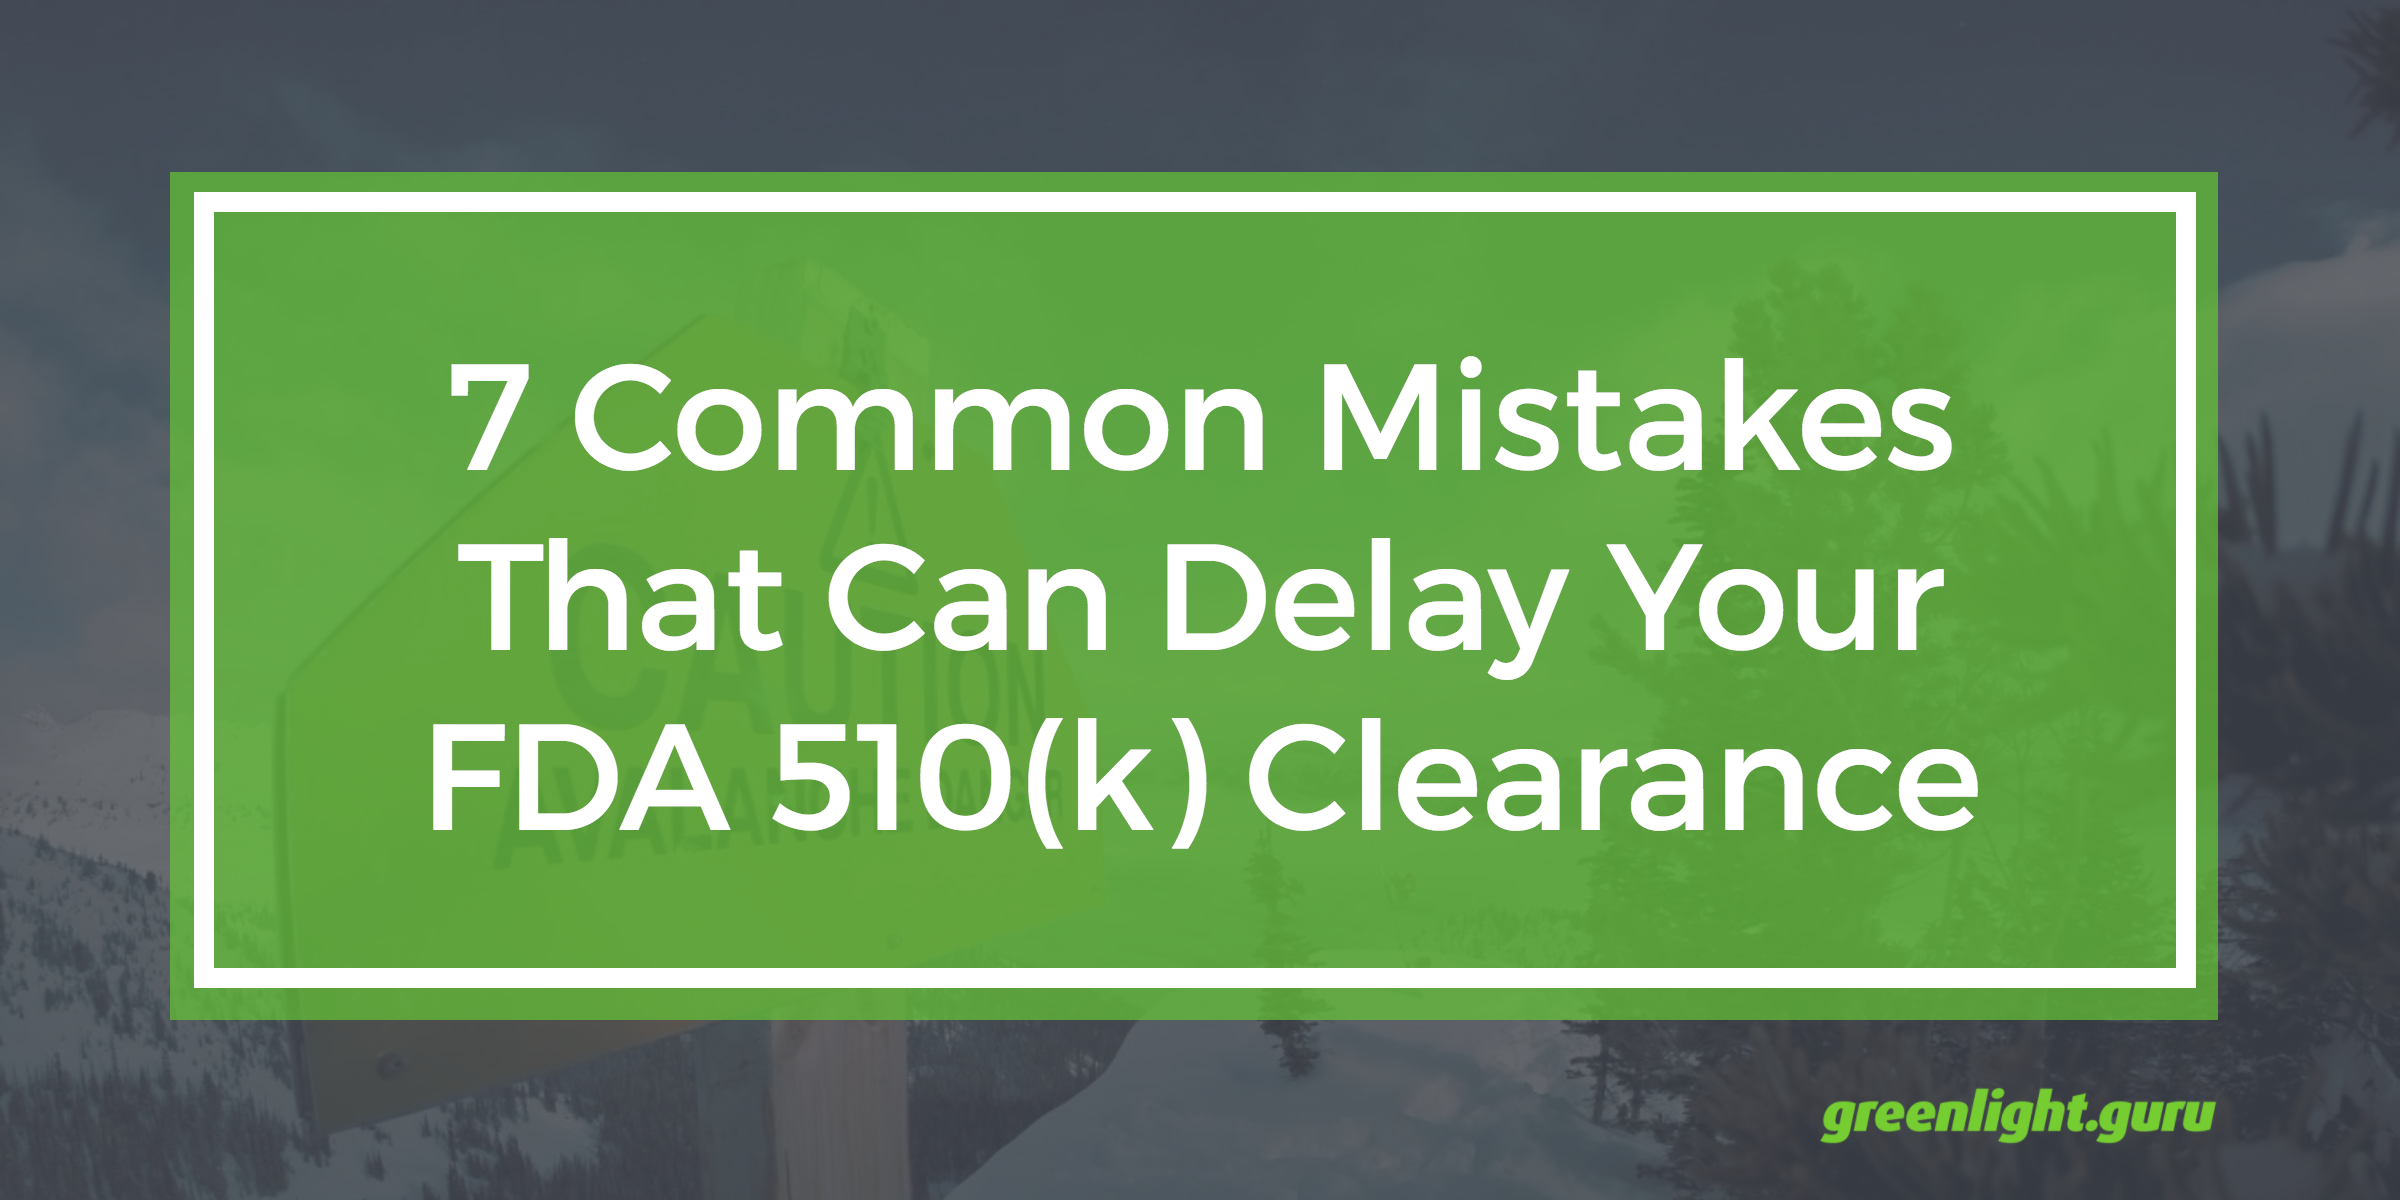 common_mistaks_to_delay_fda_510k_clearance.png